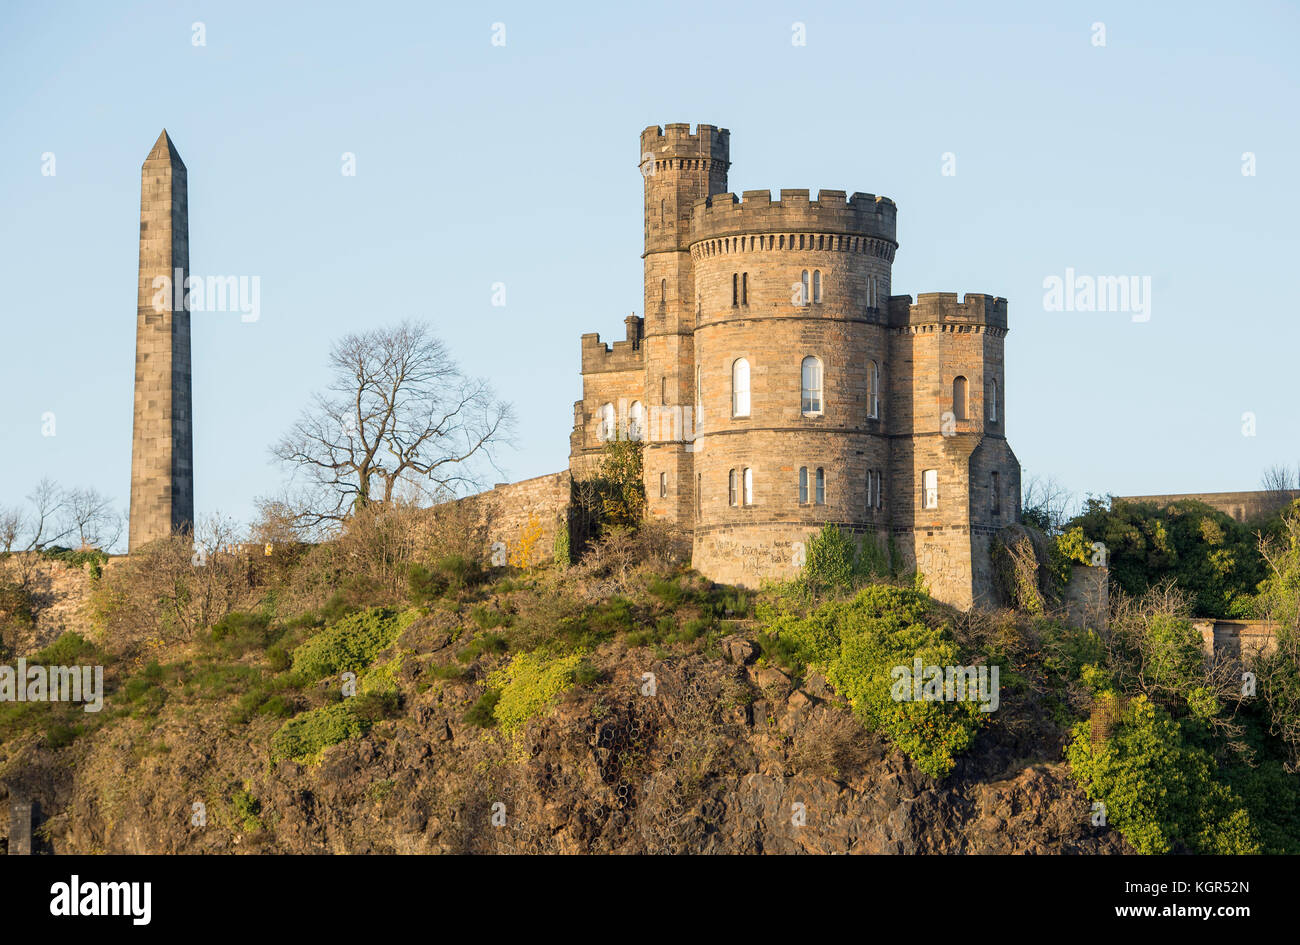 Historic buildings on Calton Hill, Edinburgh: The Martyrs Monument and Governors House of the old Calton Jail. - Stock Image